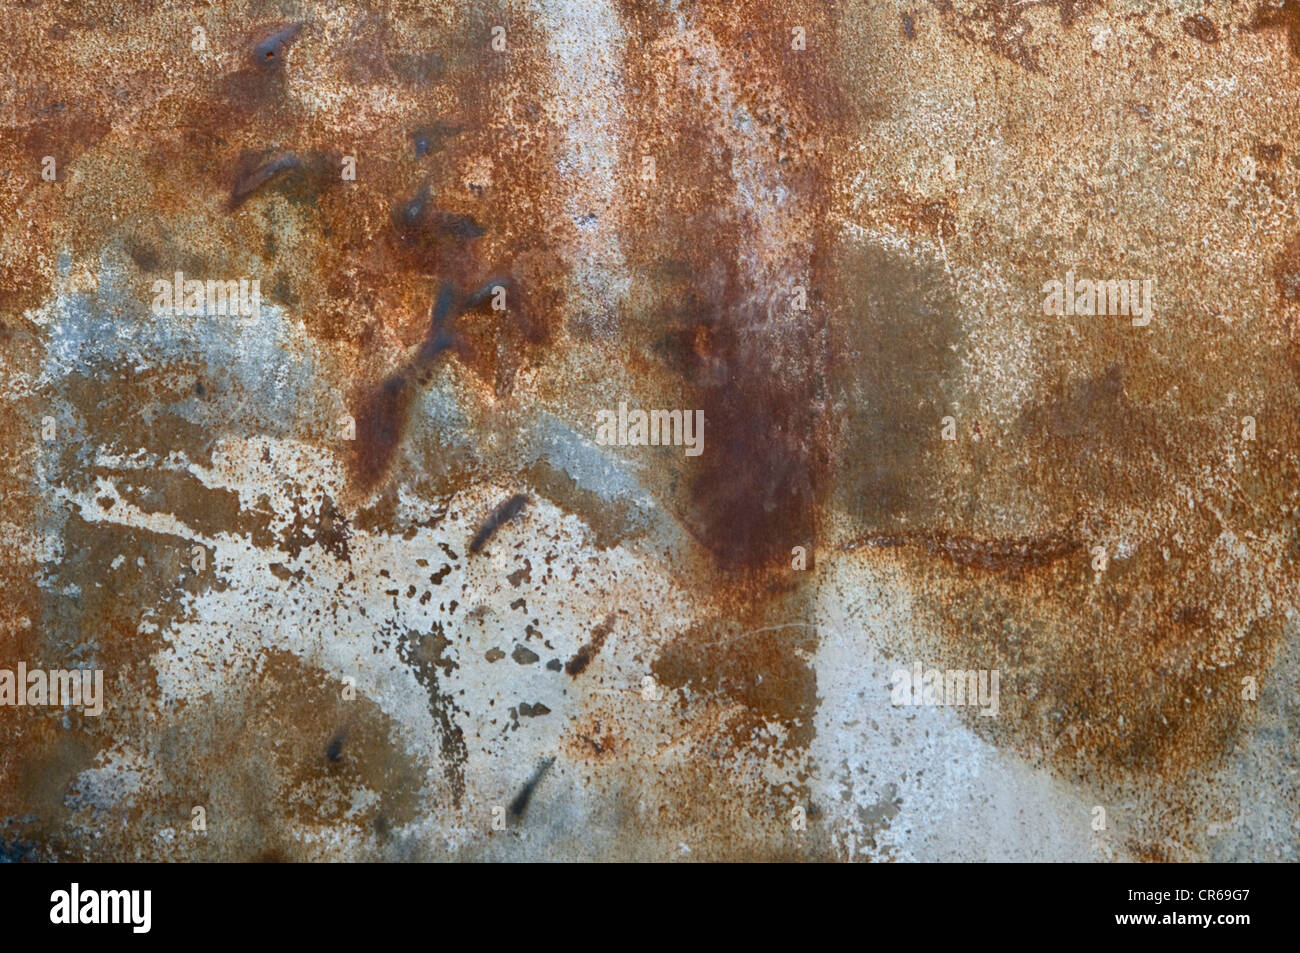 Metal plate with rust and paint stains, background - Stock Image